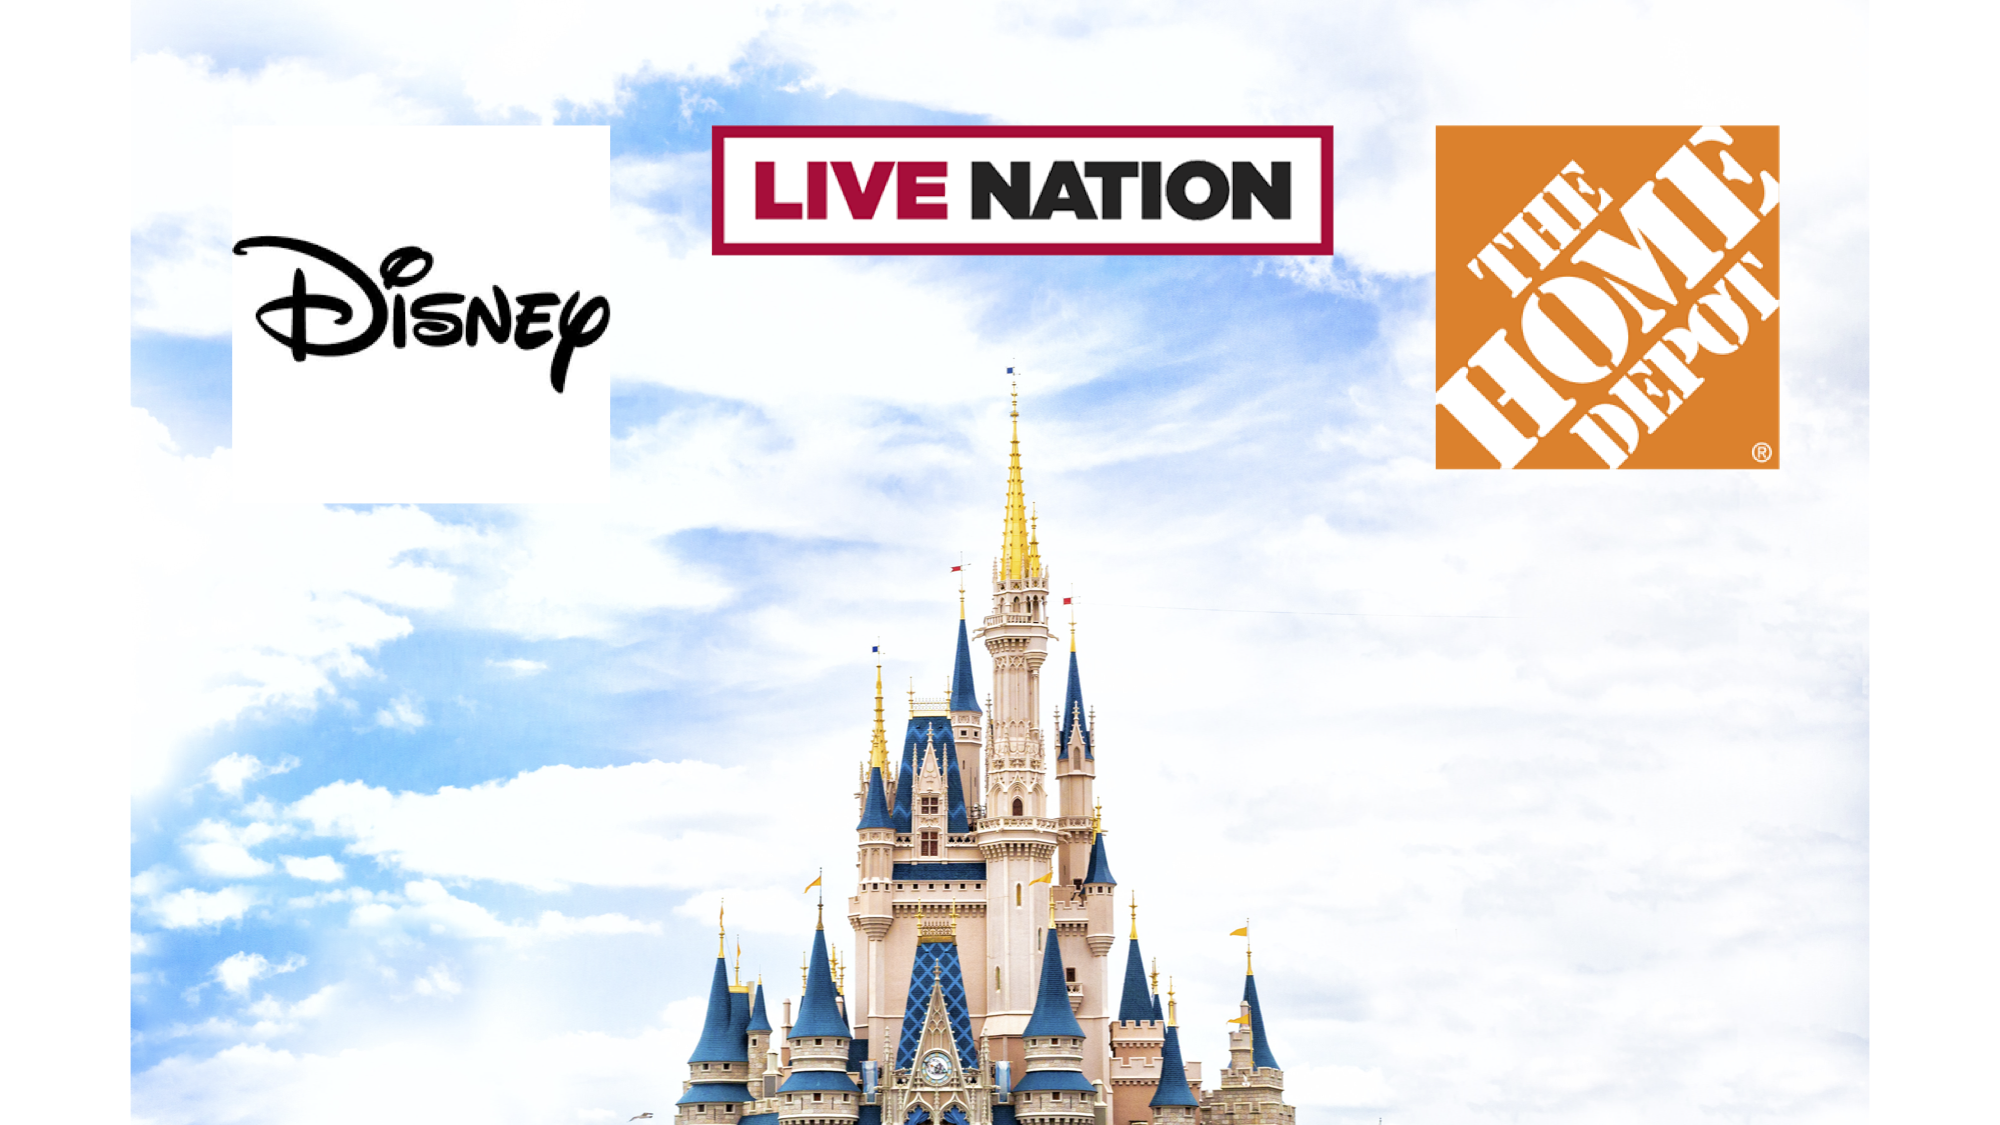 Cover image for Where did Disney and Live Nation's missing $10 billion go?